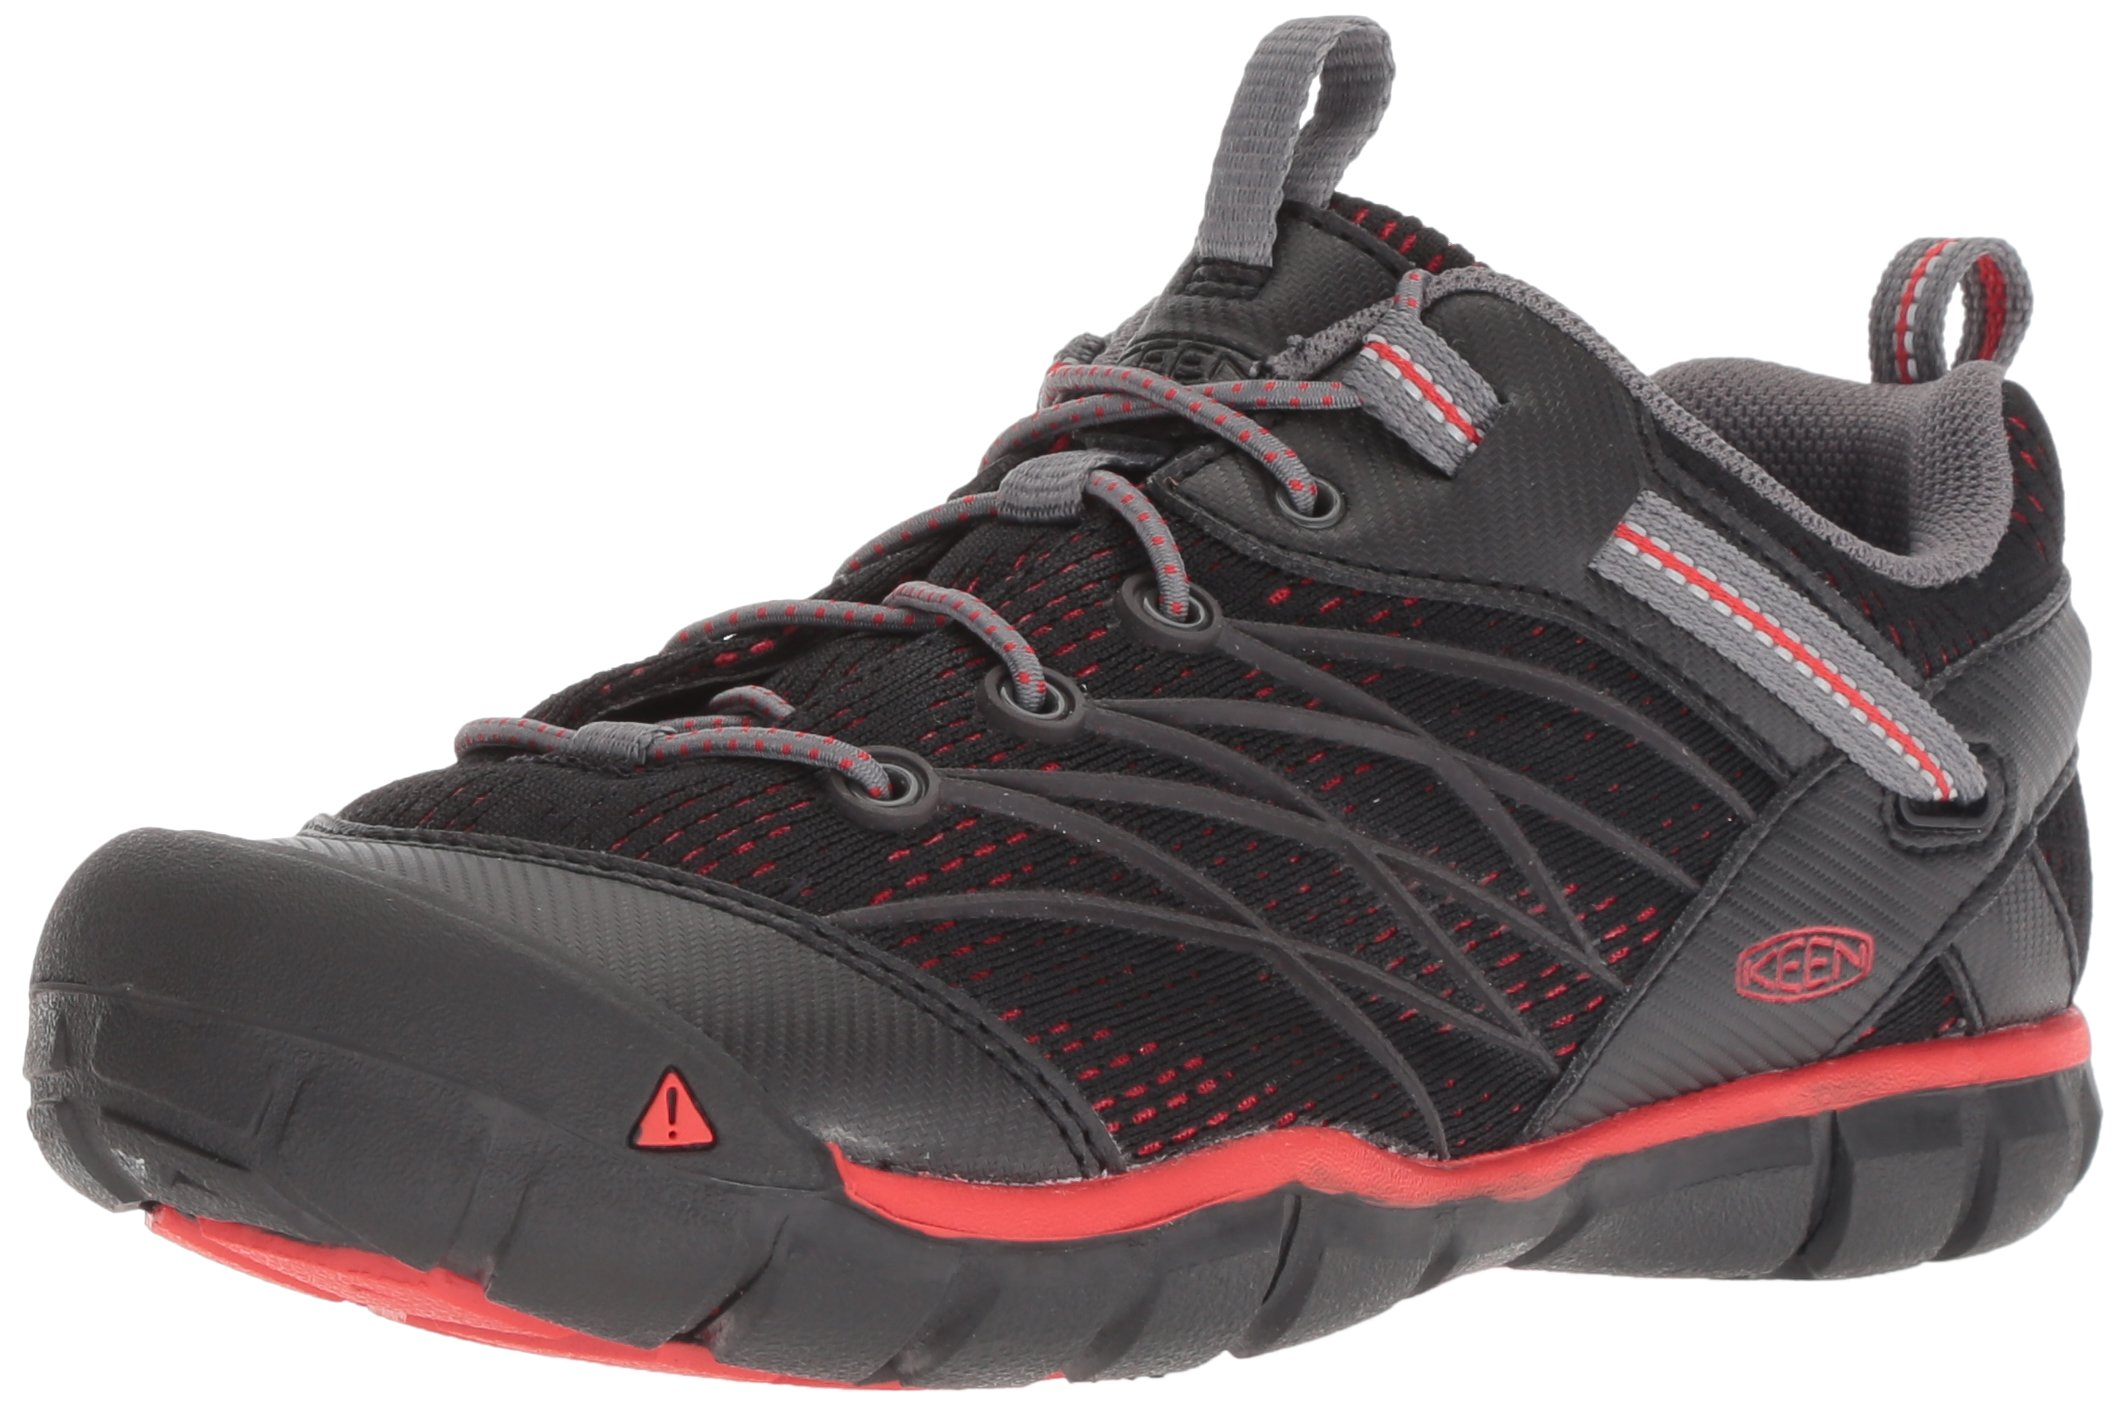 fd425359 Galleon - Keen Unisex Chandler CNX Hiking Shoe, Raven/Fiery Red, 12 ...